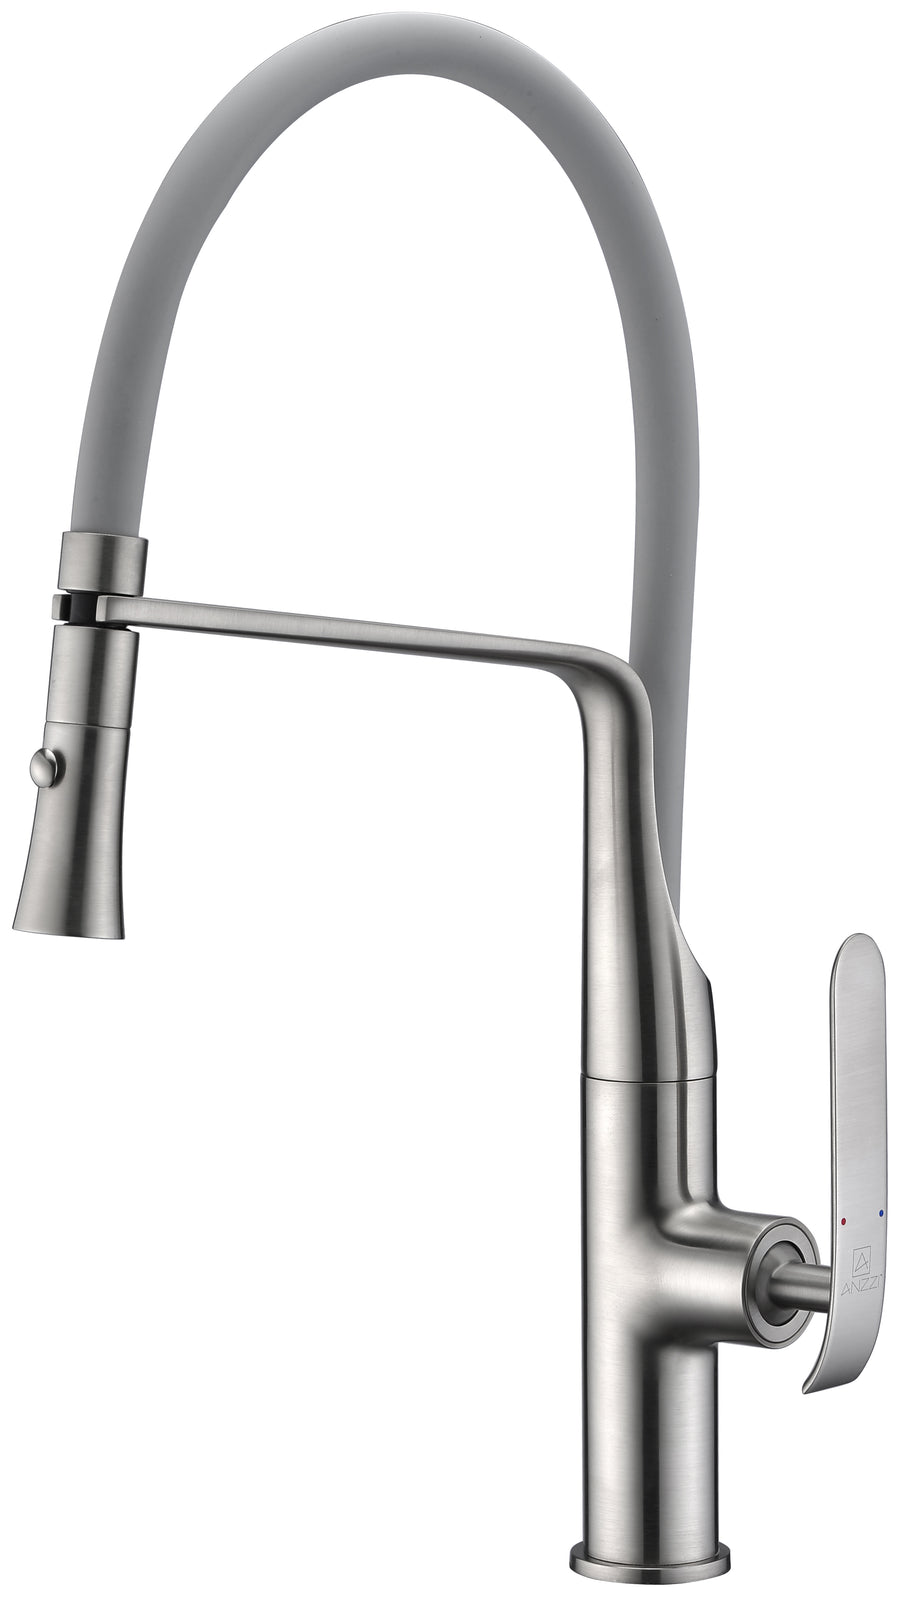 Accent Single Handle Pull-Down Sprayer Kitchen Faucet in Brushed Nickel